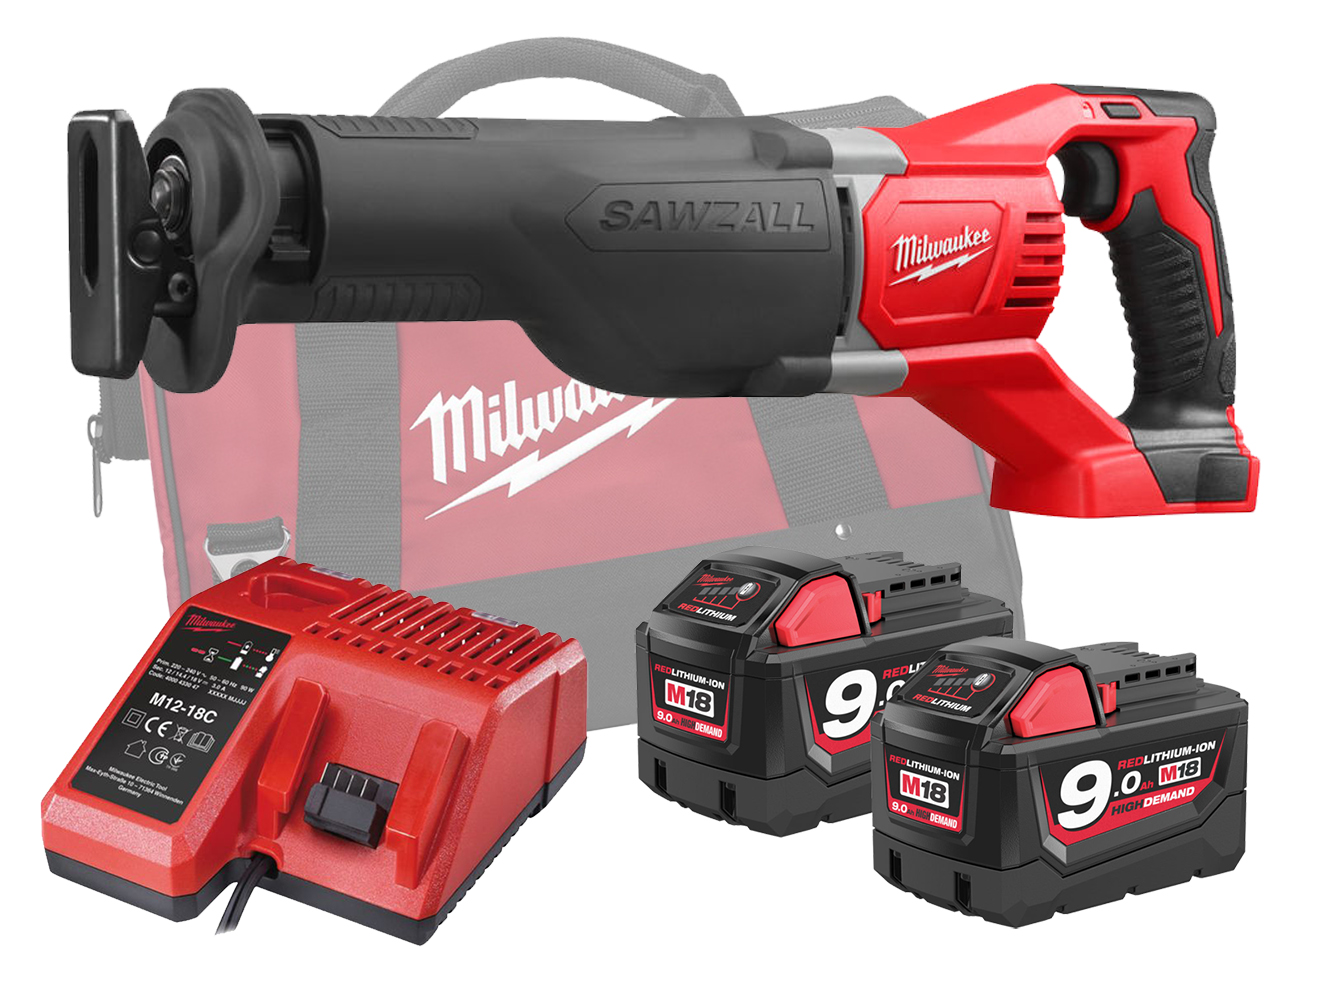 MILWAUKEE 18V BRUSHED RECIPROCATING SAW - M18BSX - 9.0AH PACK